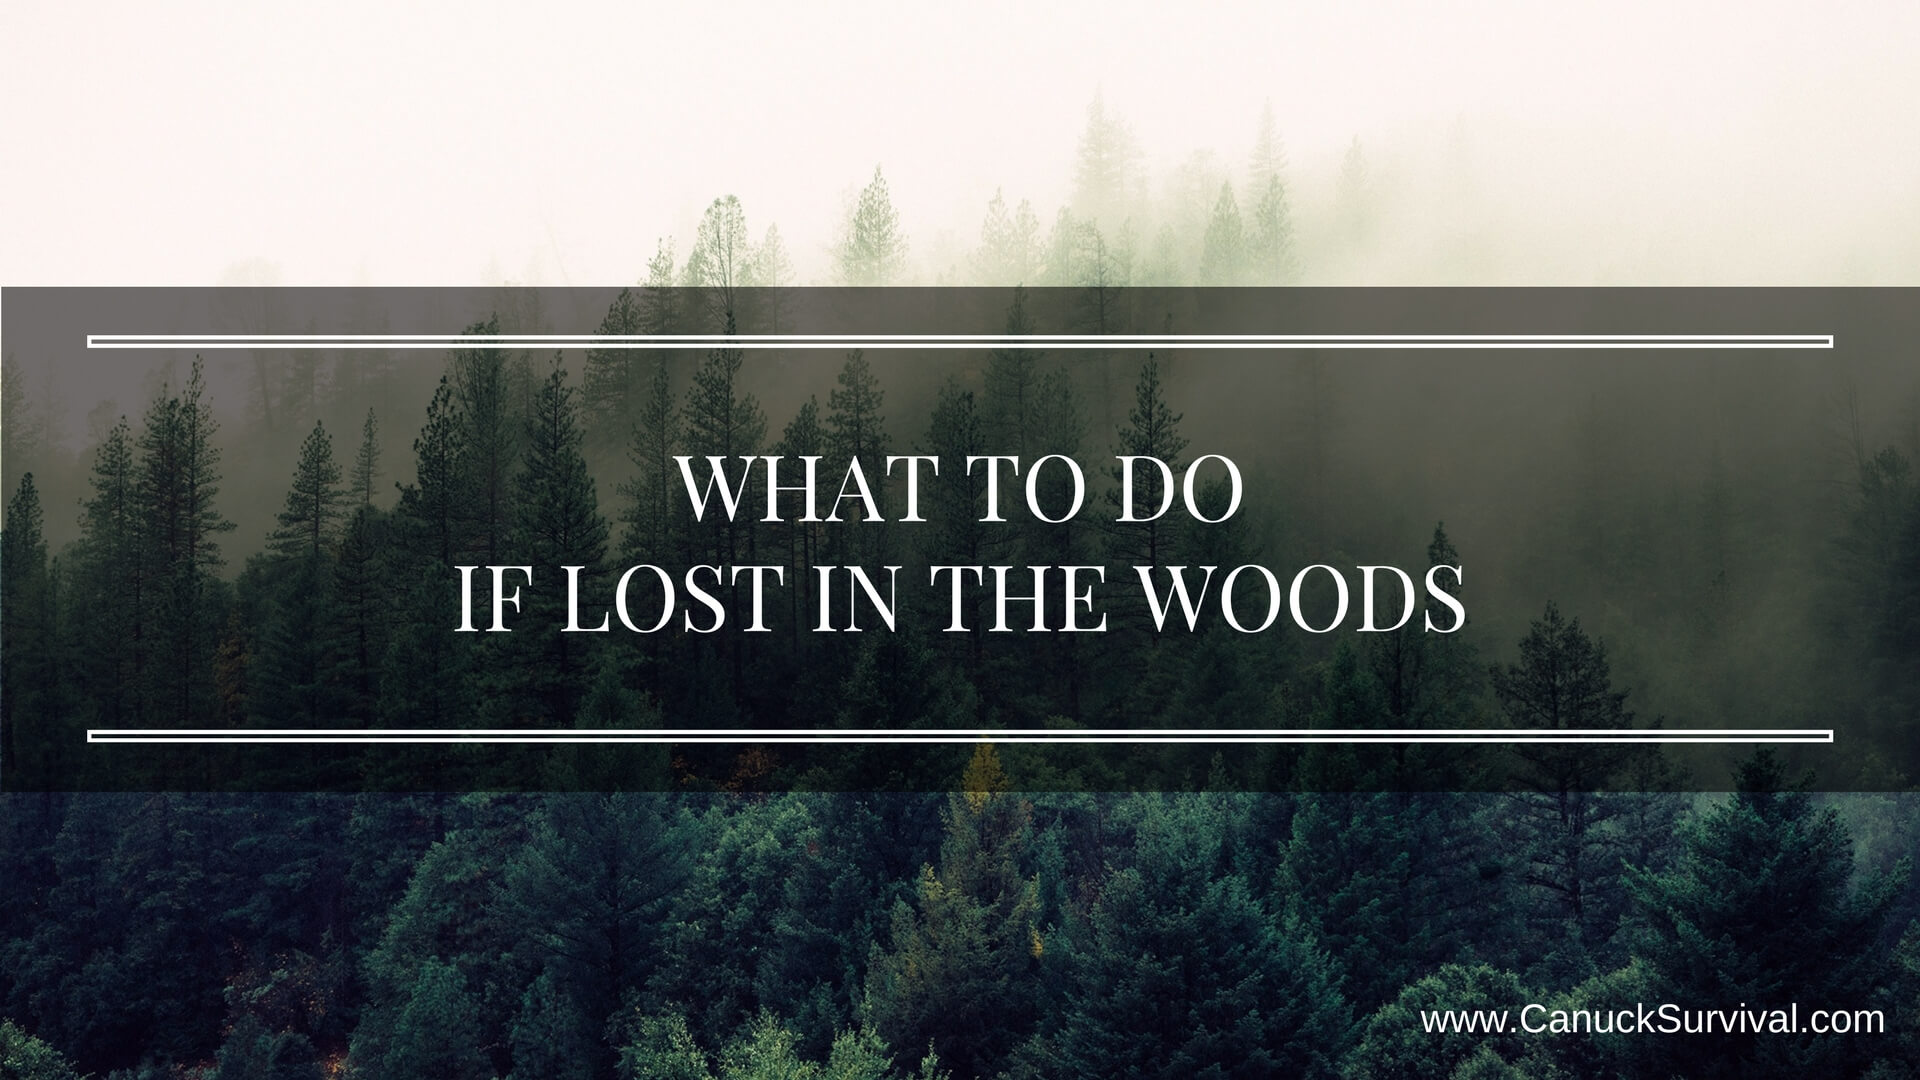 What To Do if Lost in The Woods